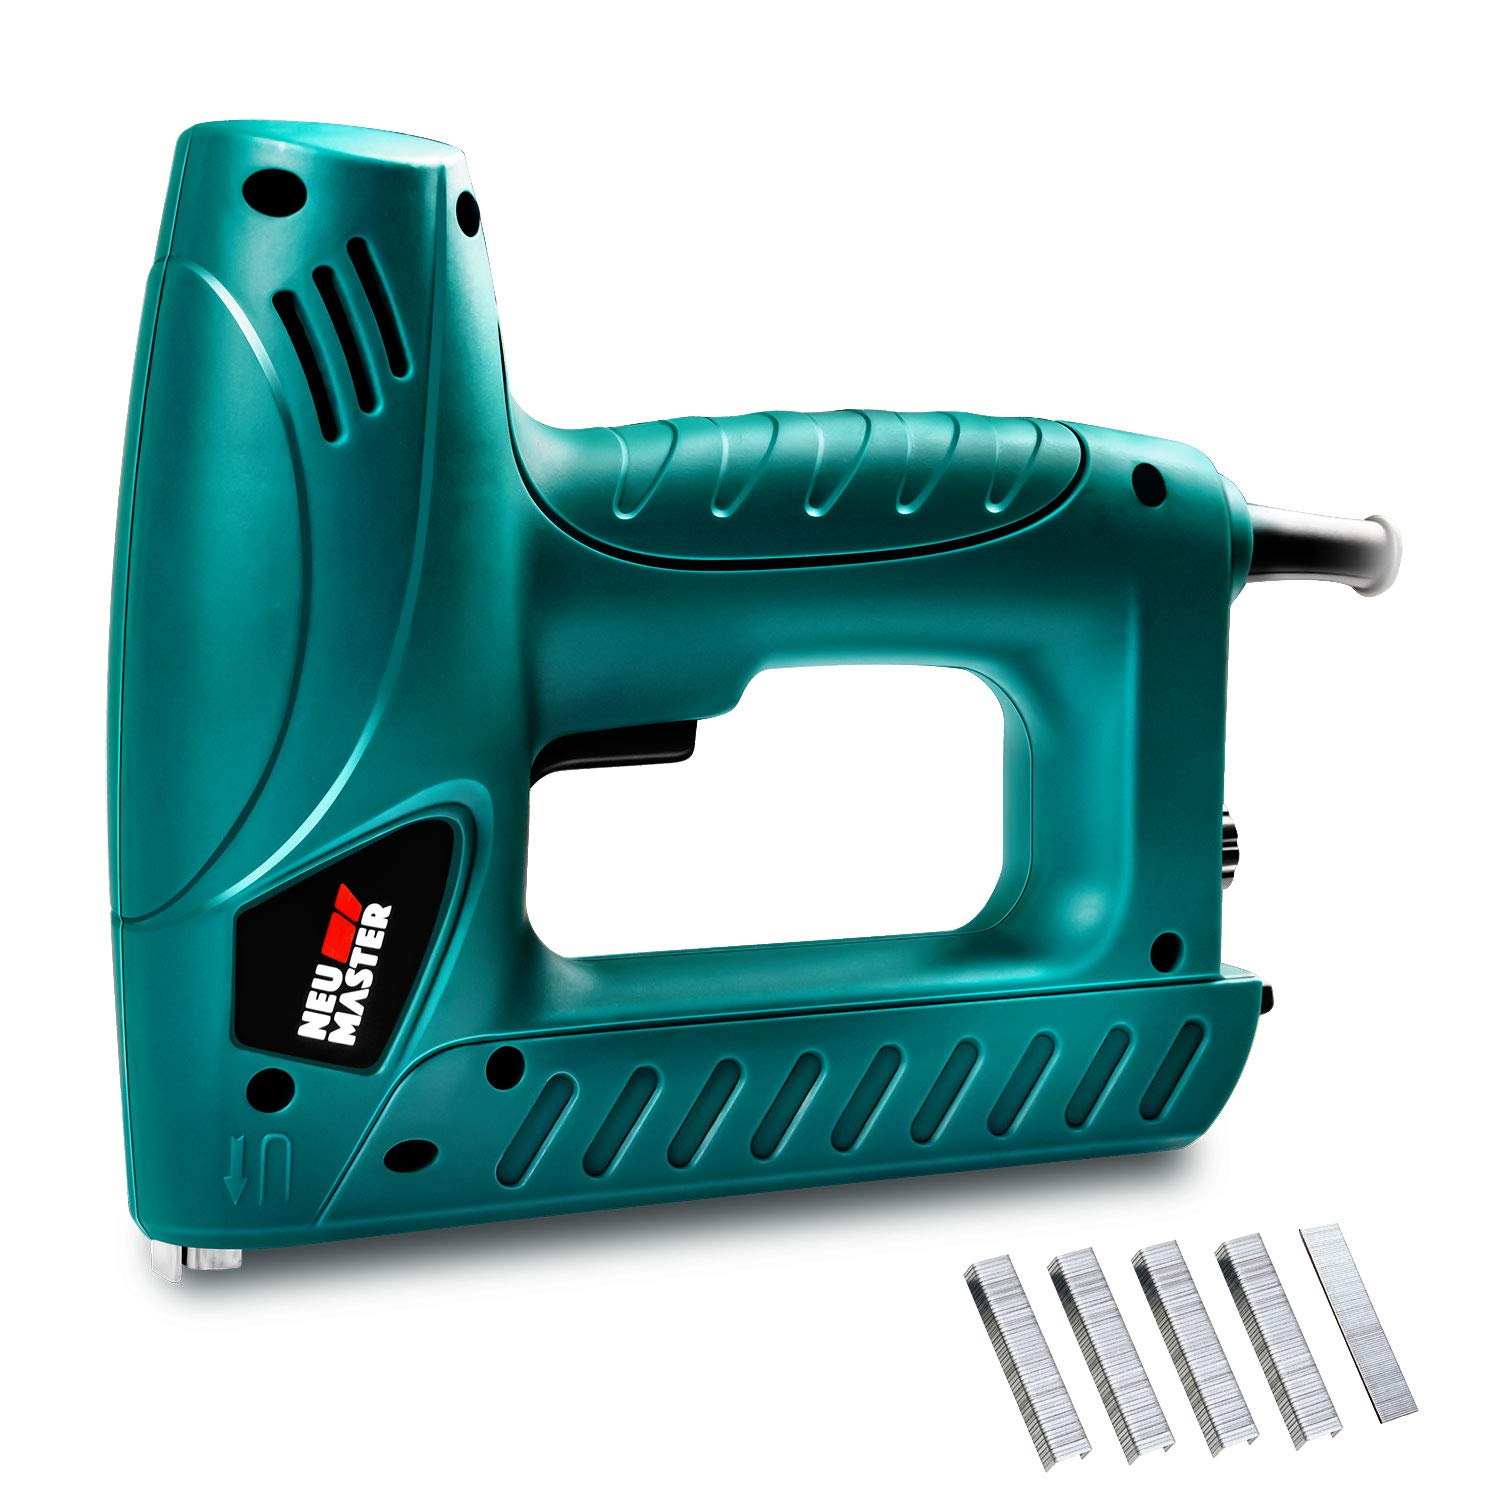 Electric Brad Nailer, NEU MASTER Staple Gun N6013 with Contact Safety and Power Adjustable Knob for Upholstery and Home Improvement, Includes 400pcs Staples and 100pcs Nails